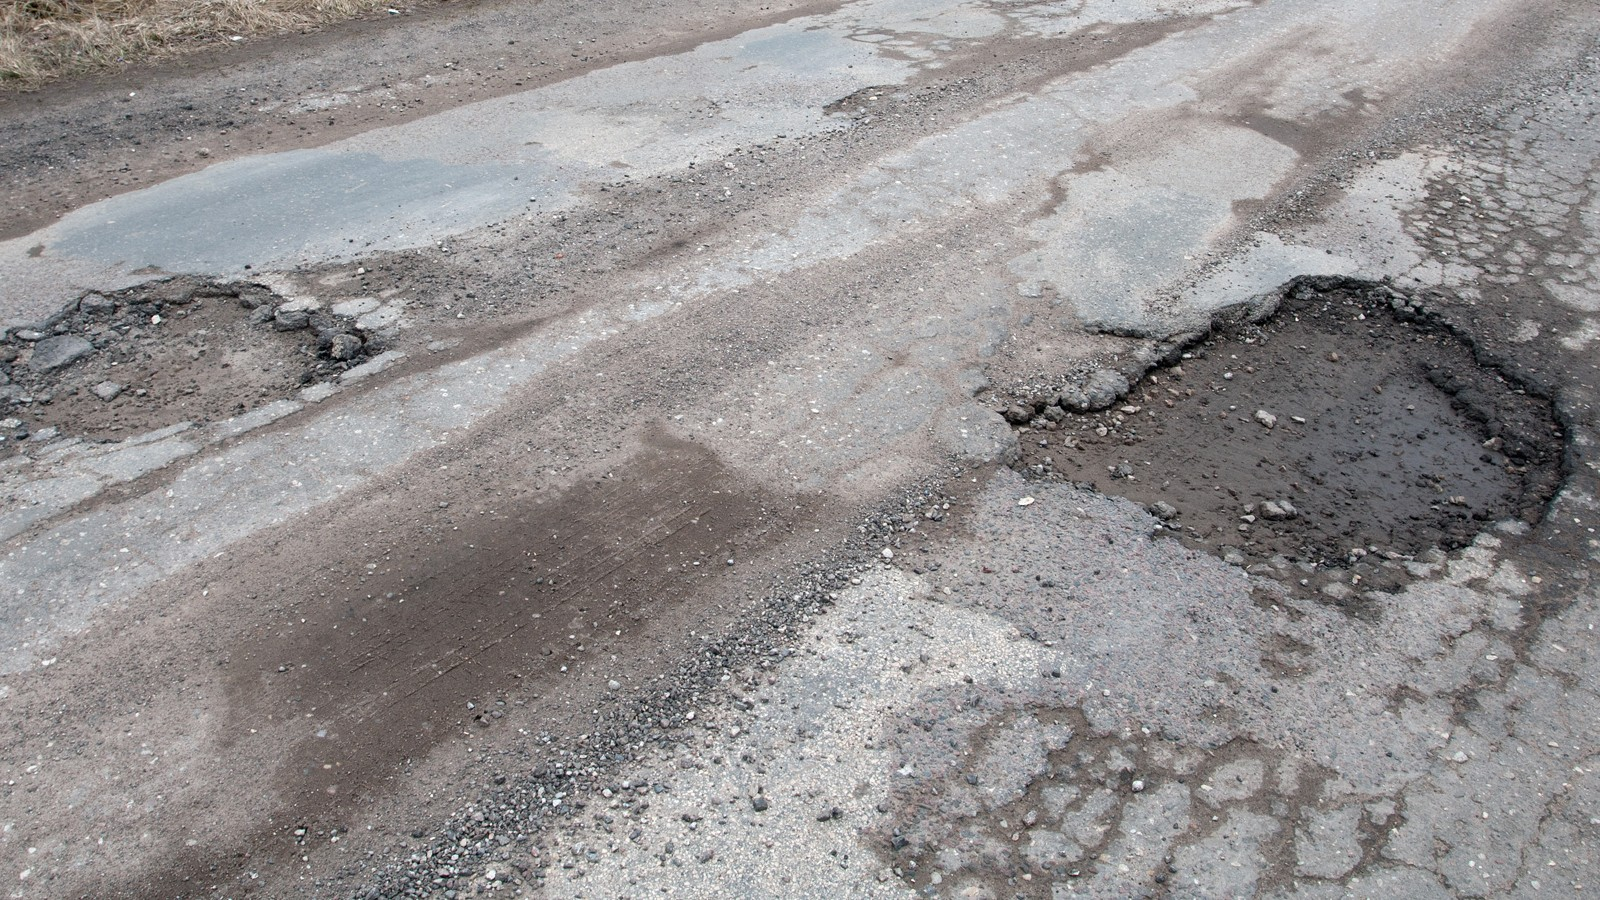 Damaged asphalt road after winter.